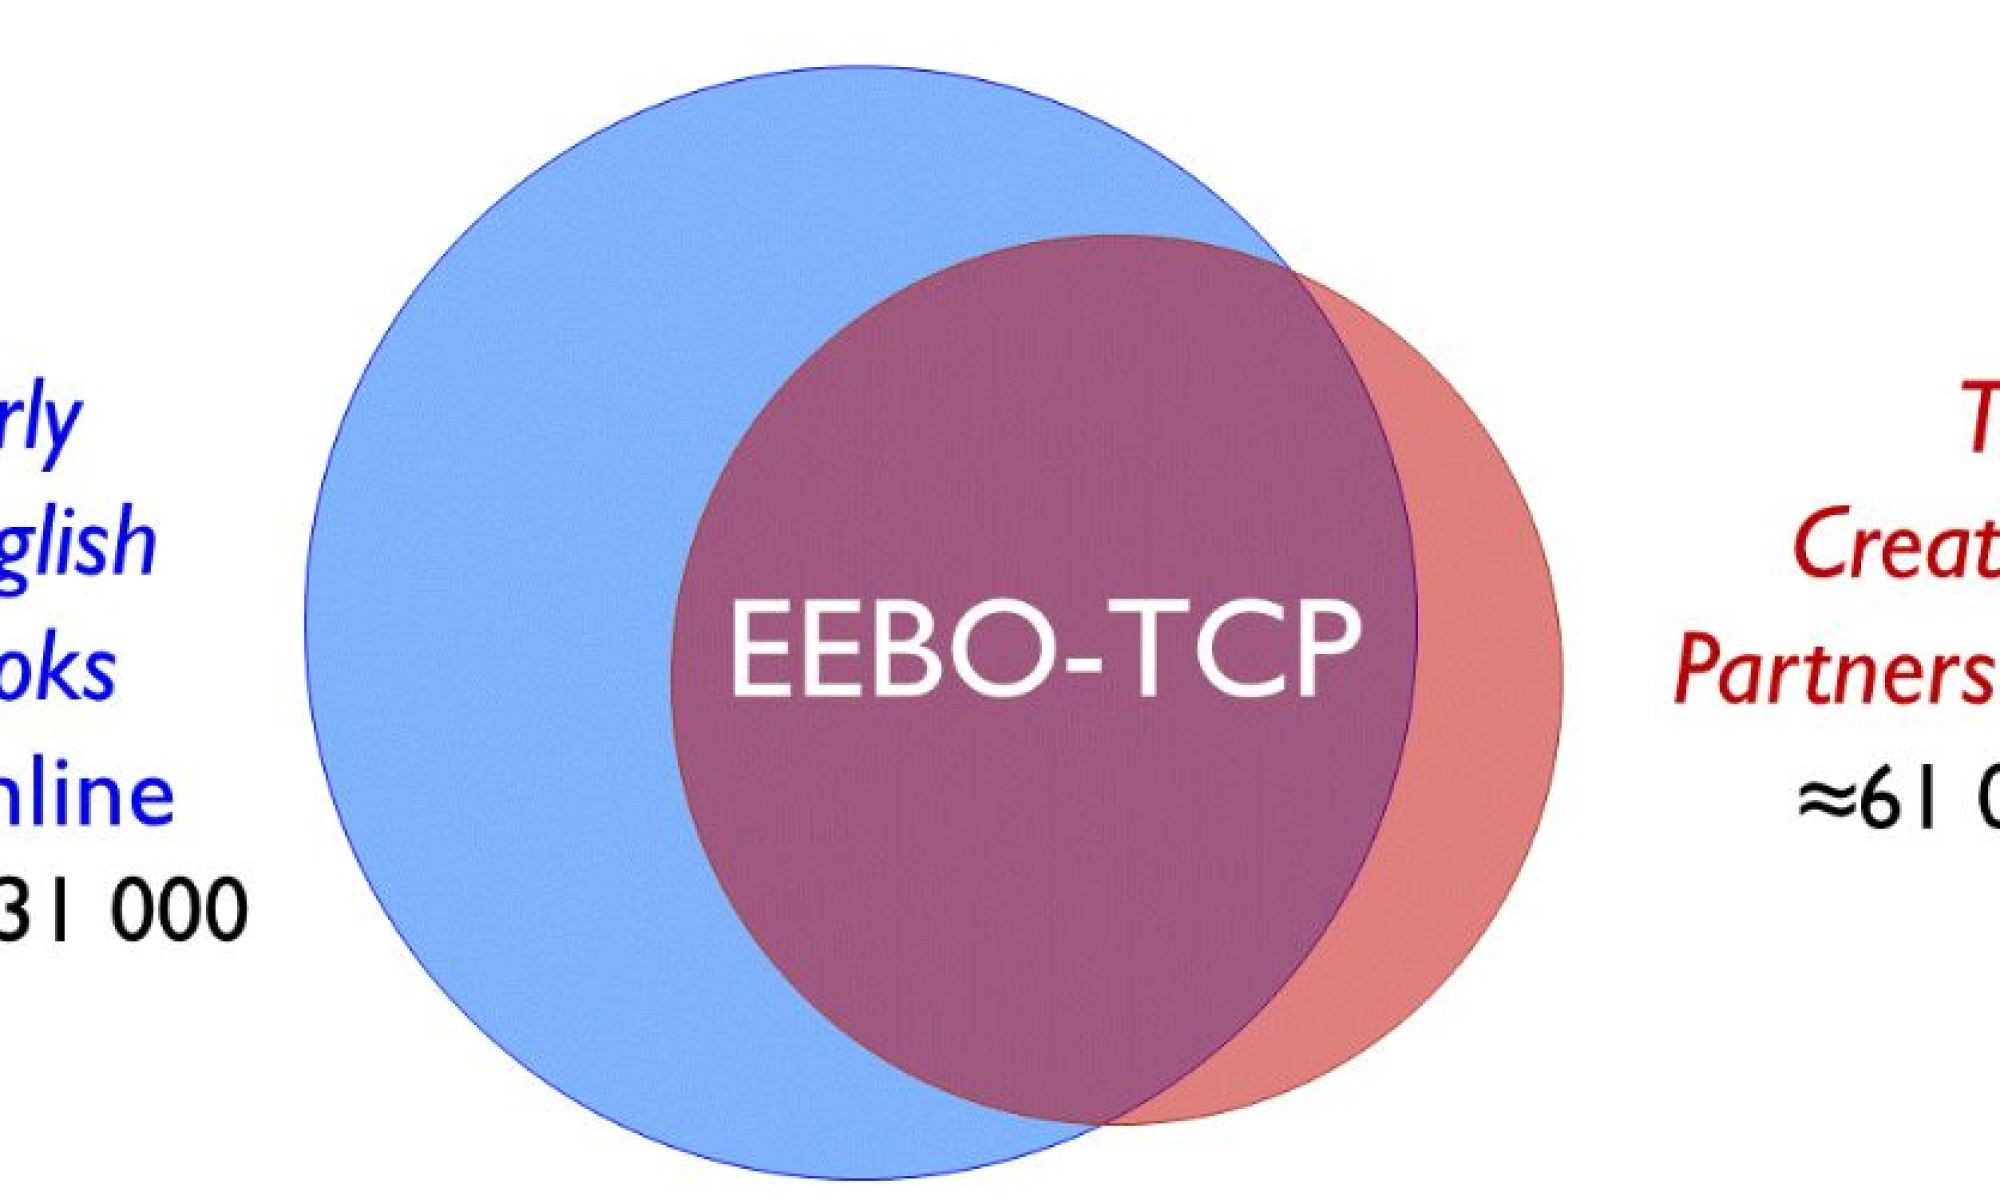 Venn diagram showing the overlap between EEBO and TCP.